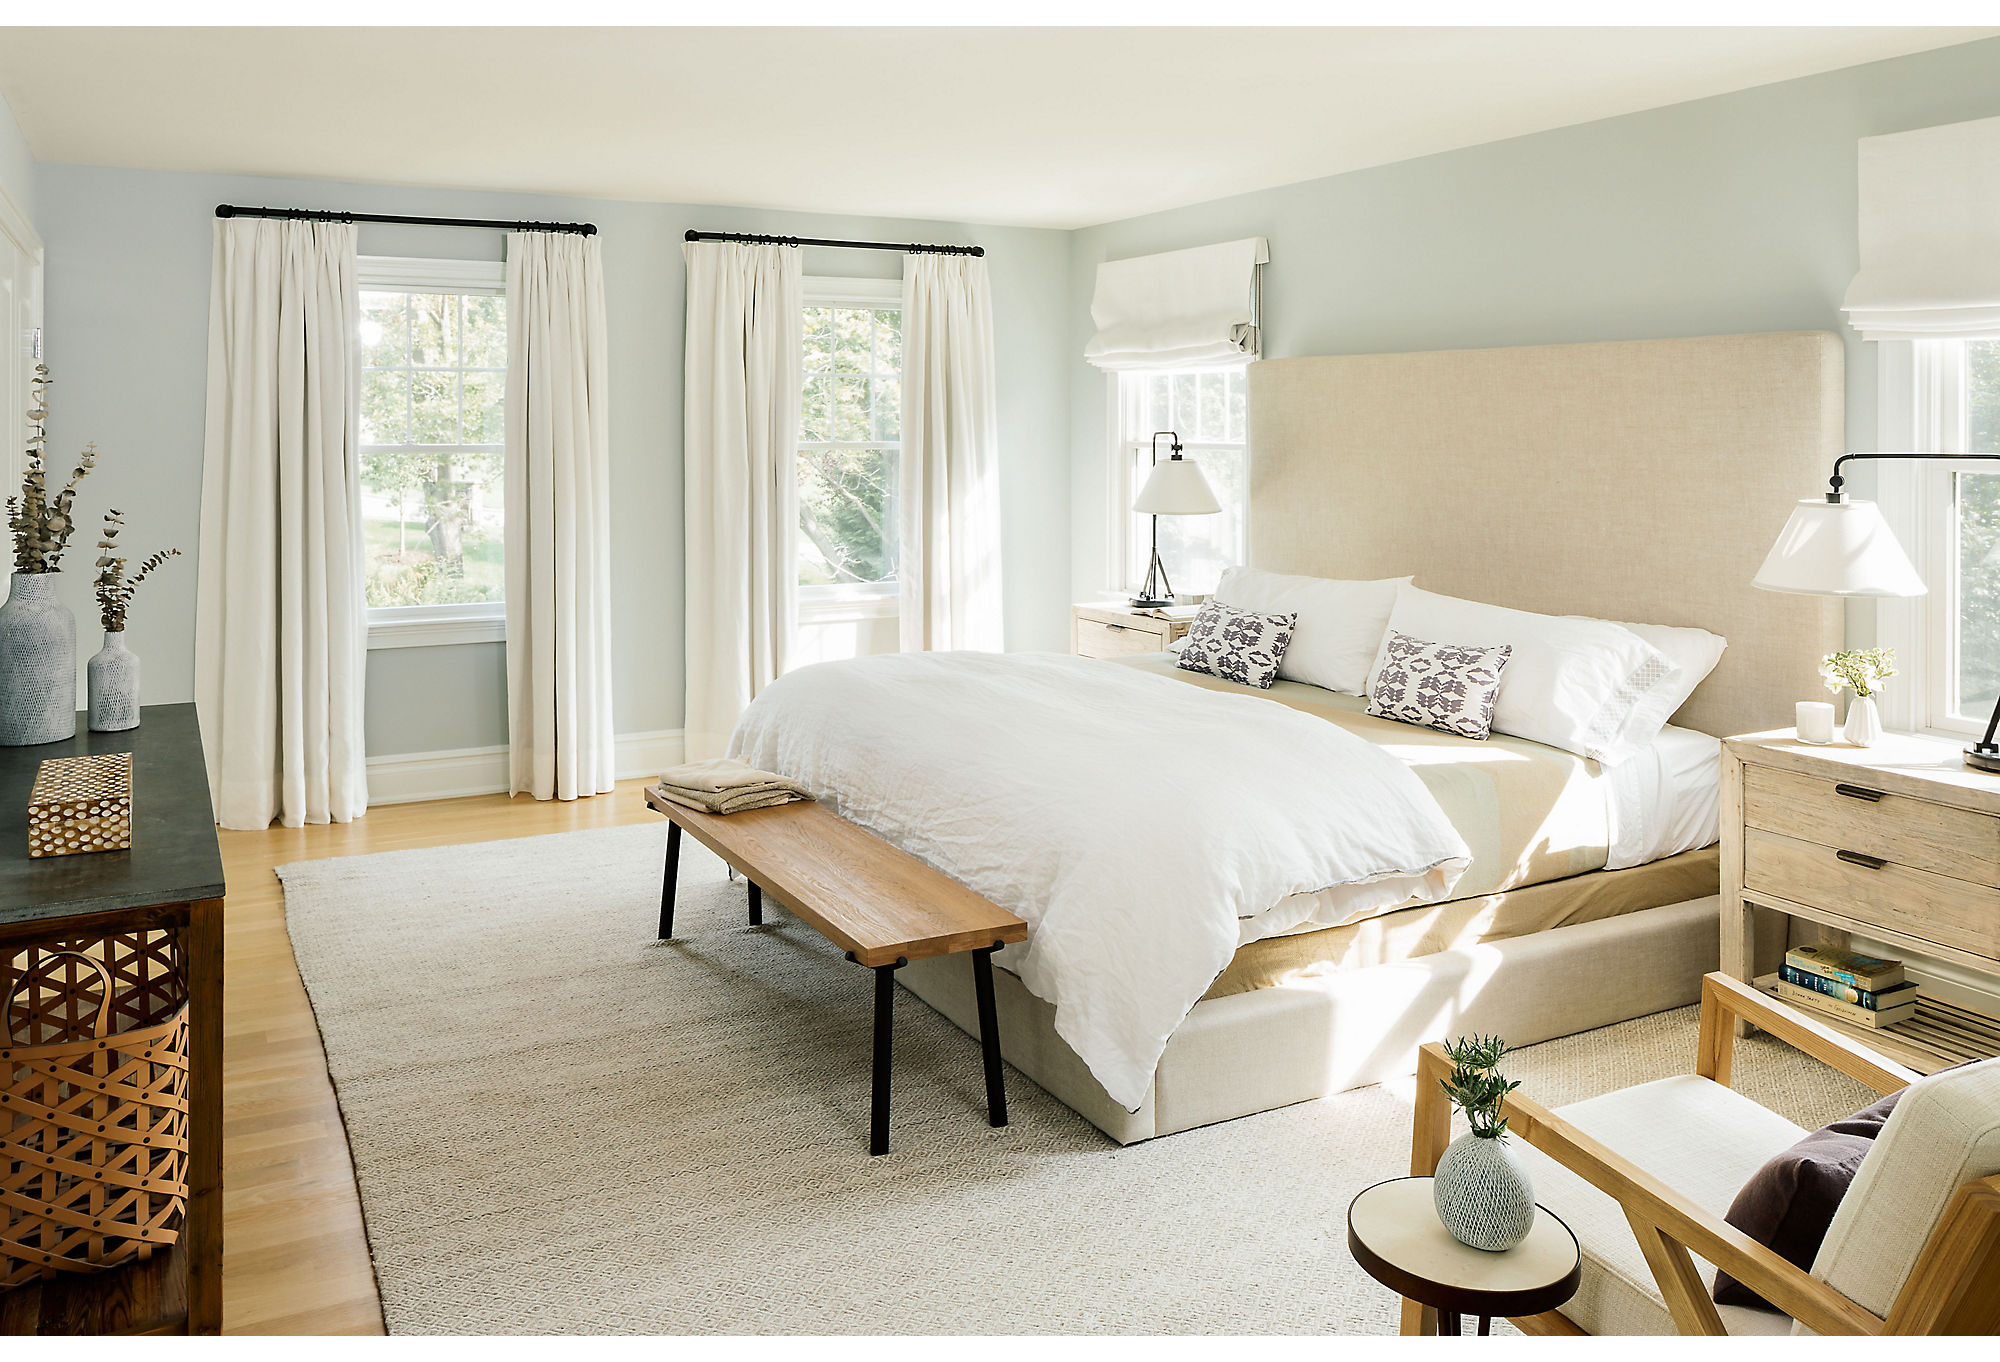 The couple gravitated tomore-industrial elements, so Chauncey set about softening that look in the master bedroom with simple white drapes and a muted palette. The room is painted in Horizonfrom Benjamin Moore. Table lampsfrom Ralph Lauren Homeserve as bedside lighting.